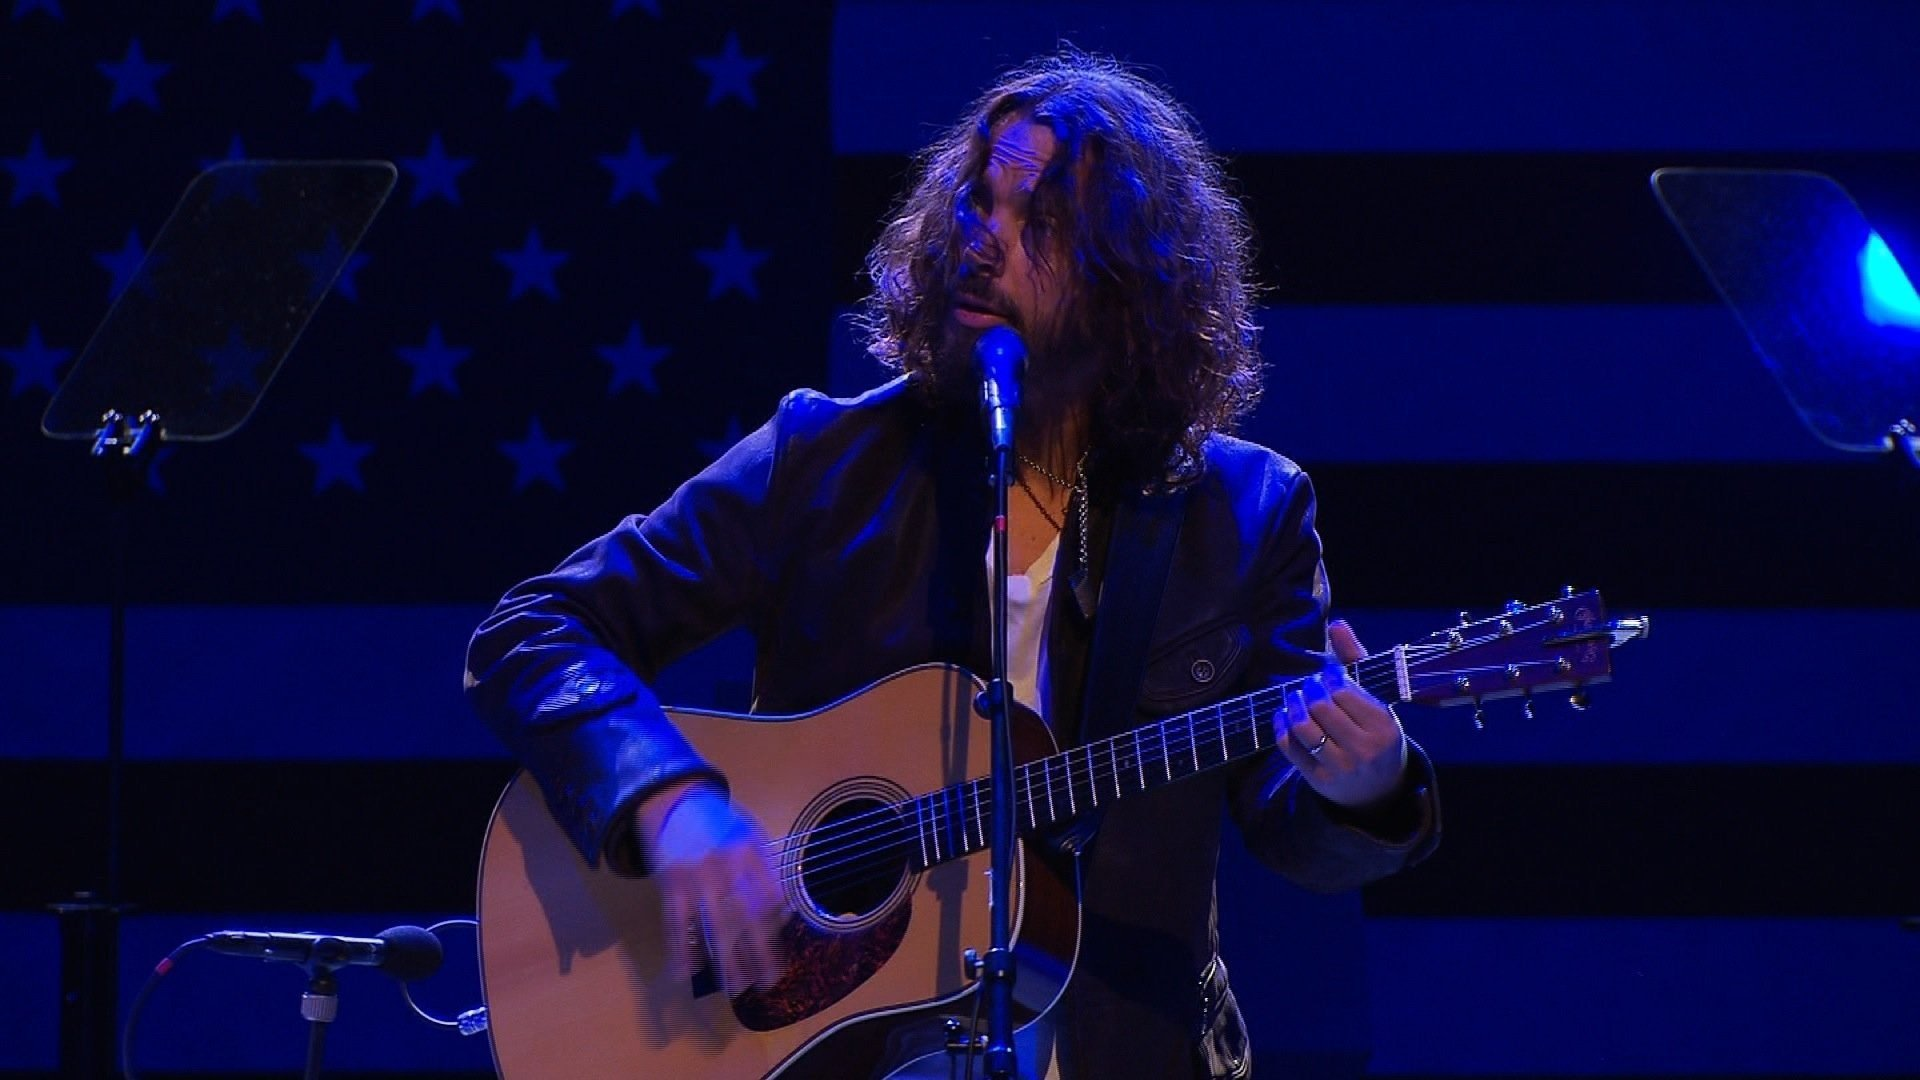 Chris Cornell, lead singer of Soundgarden and Audioslave, died Wednesday night, his representative told CNN. Cornell, 52, was in Detroit performing with Soundgarden, which had embarked on a US tour in April.